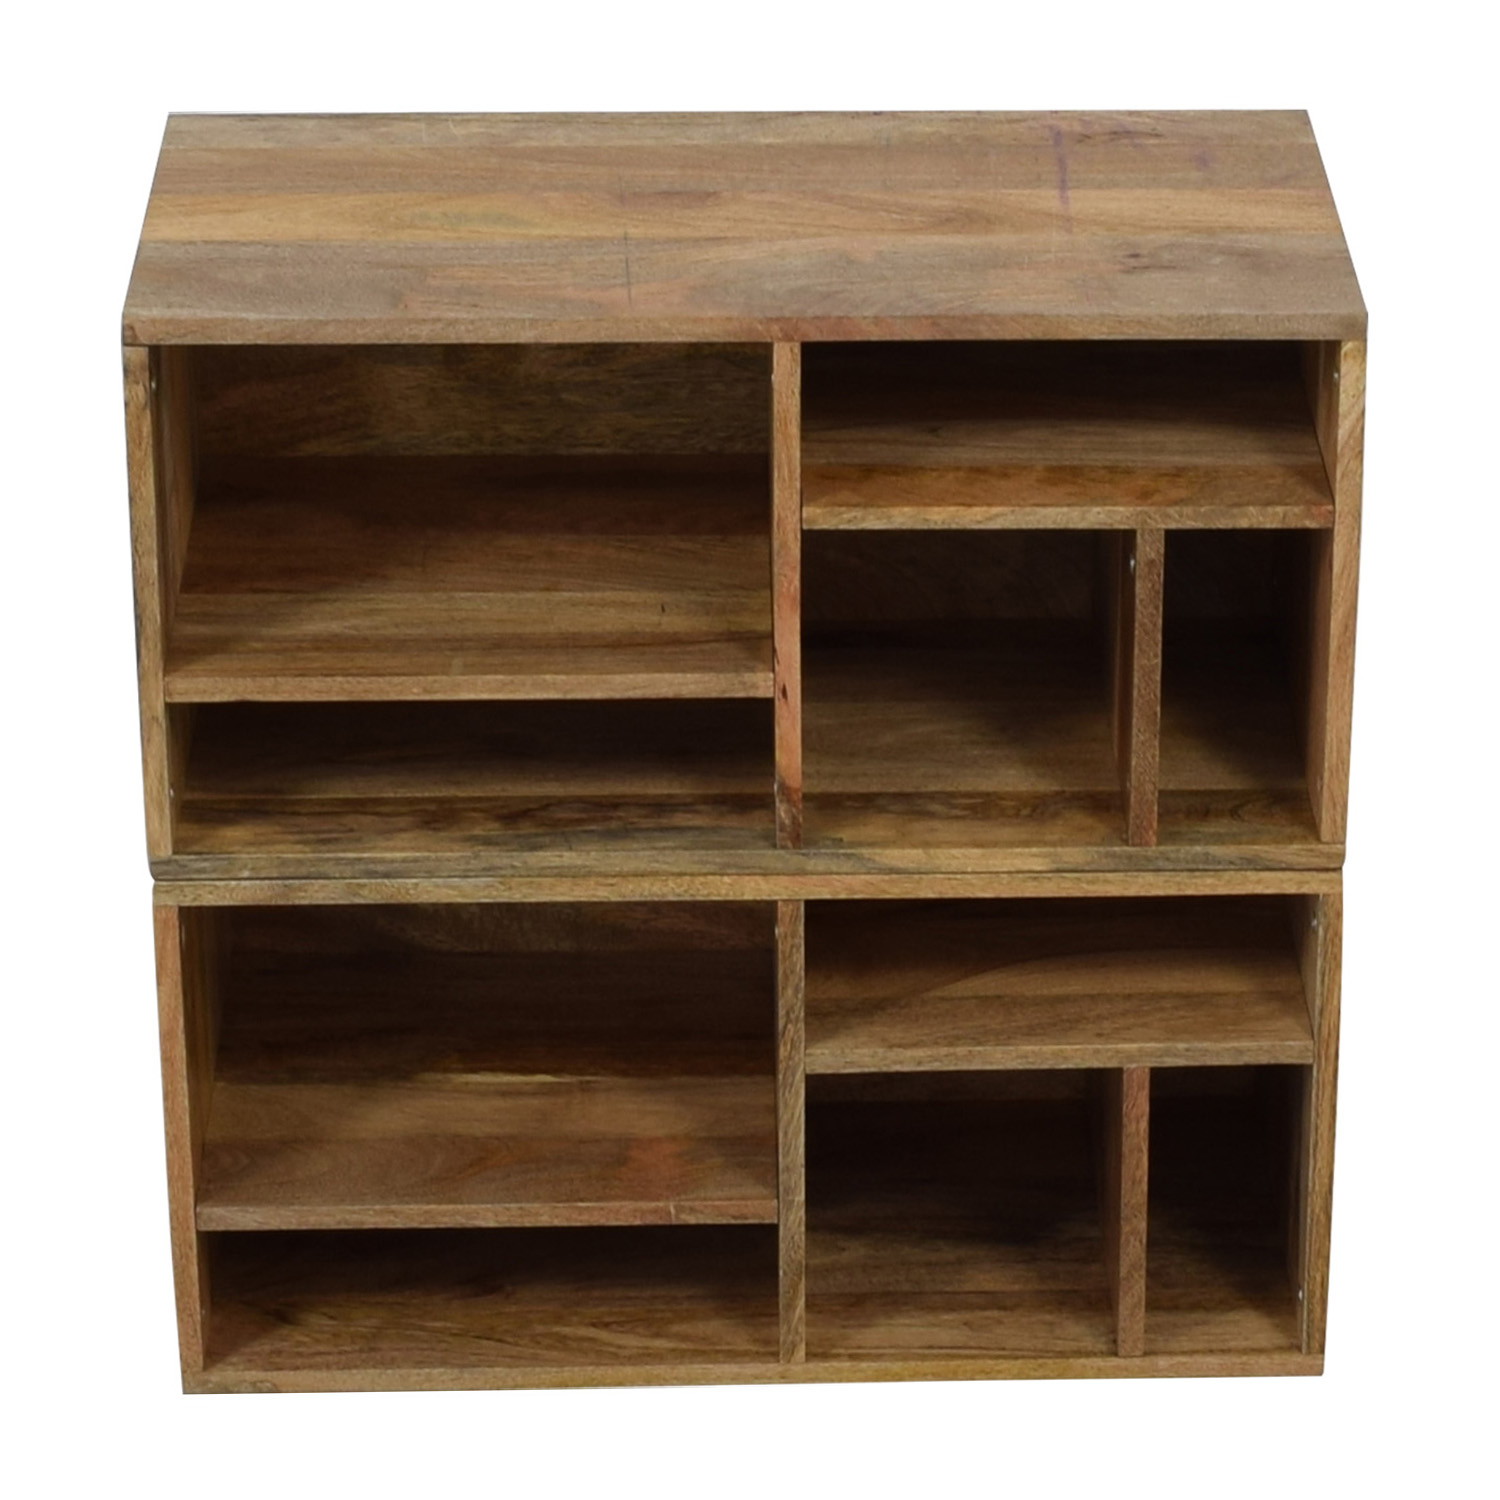 Urban Outfitters Urban Outfitters Raw Wood Bookshelves brown